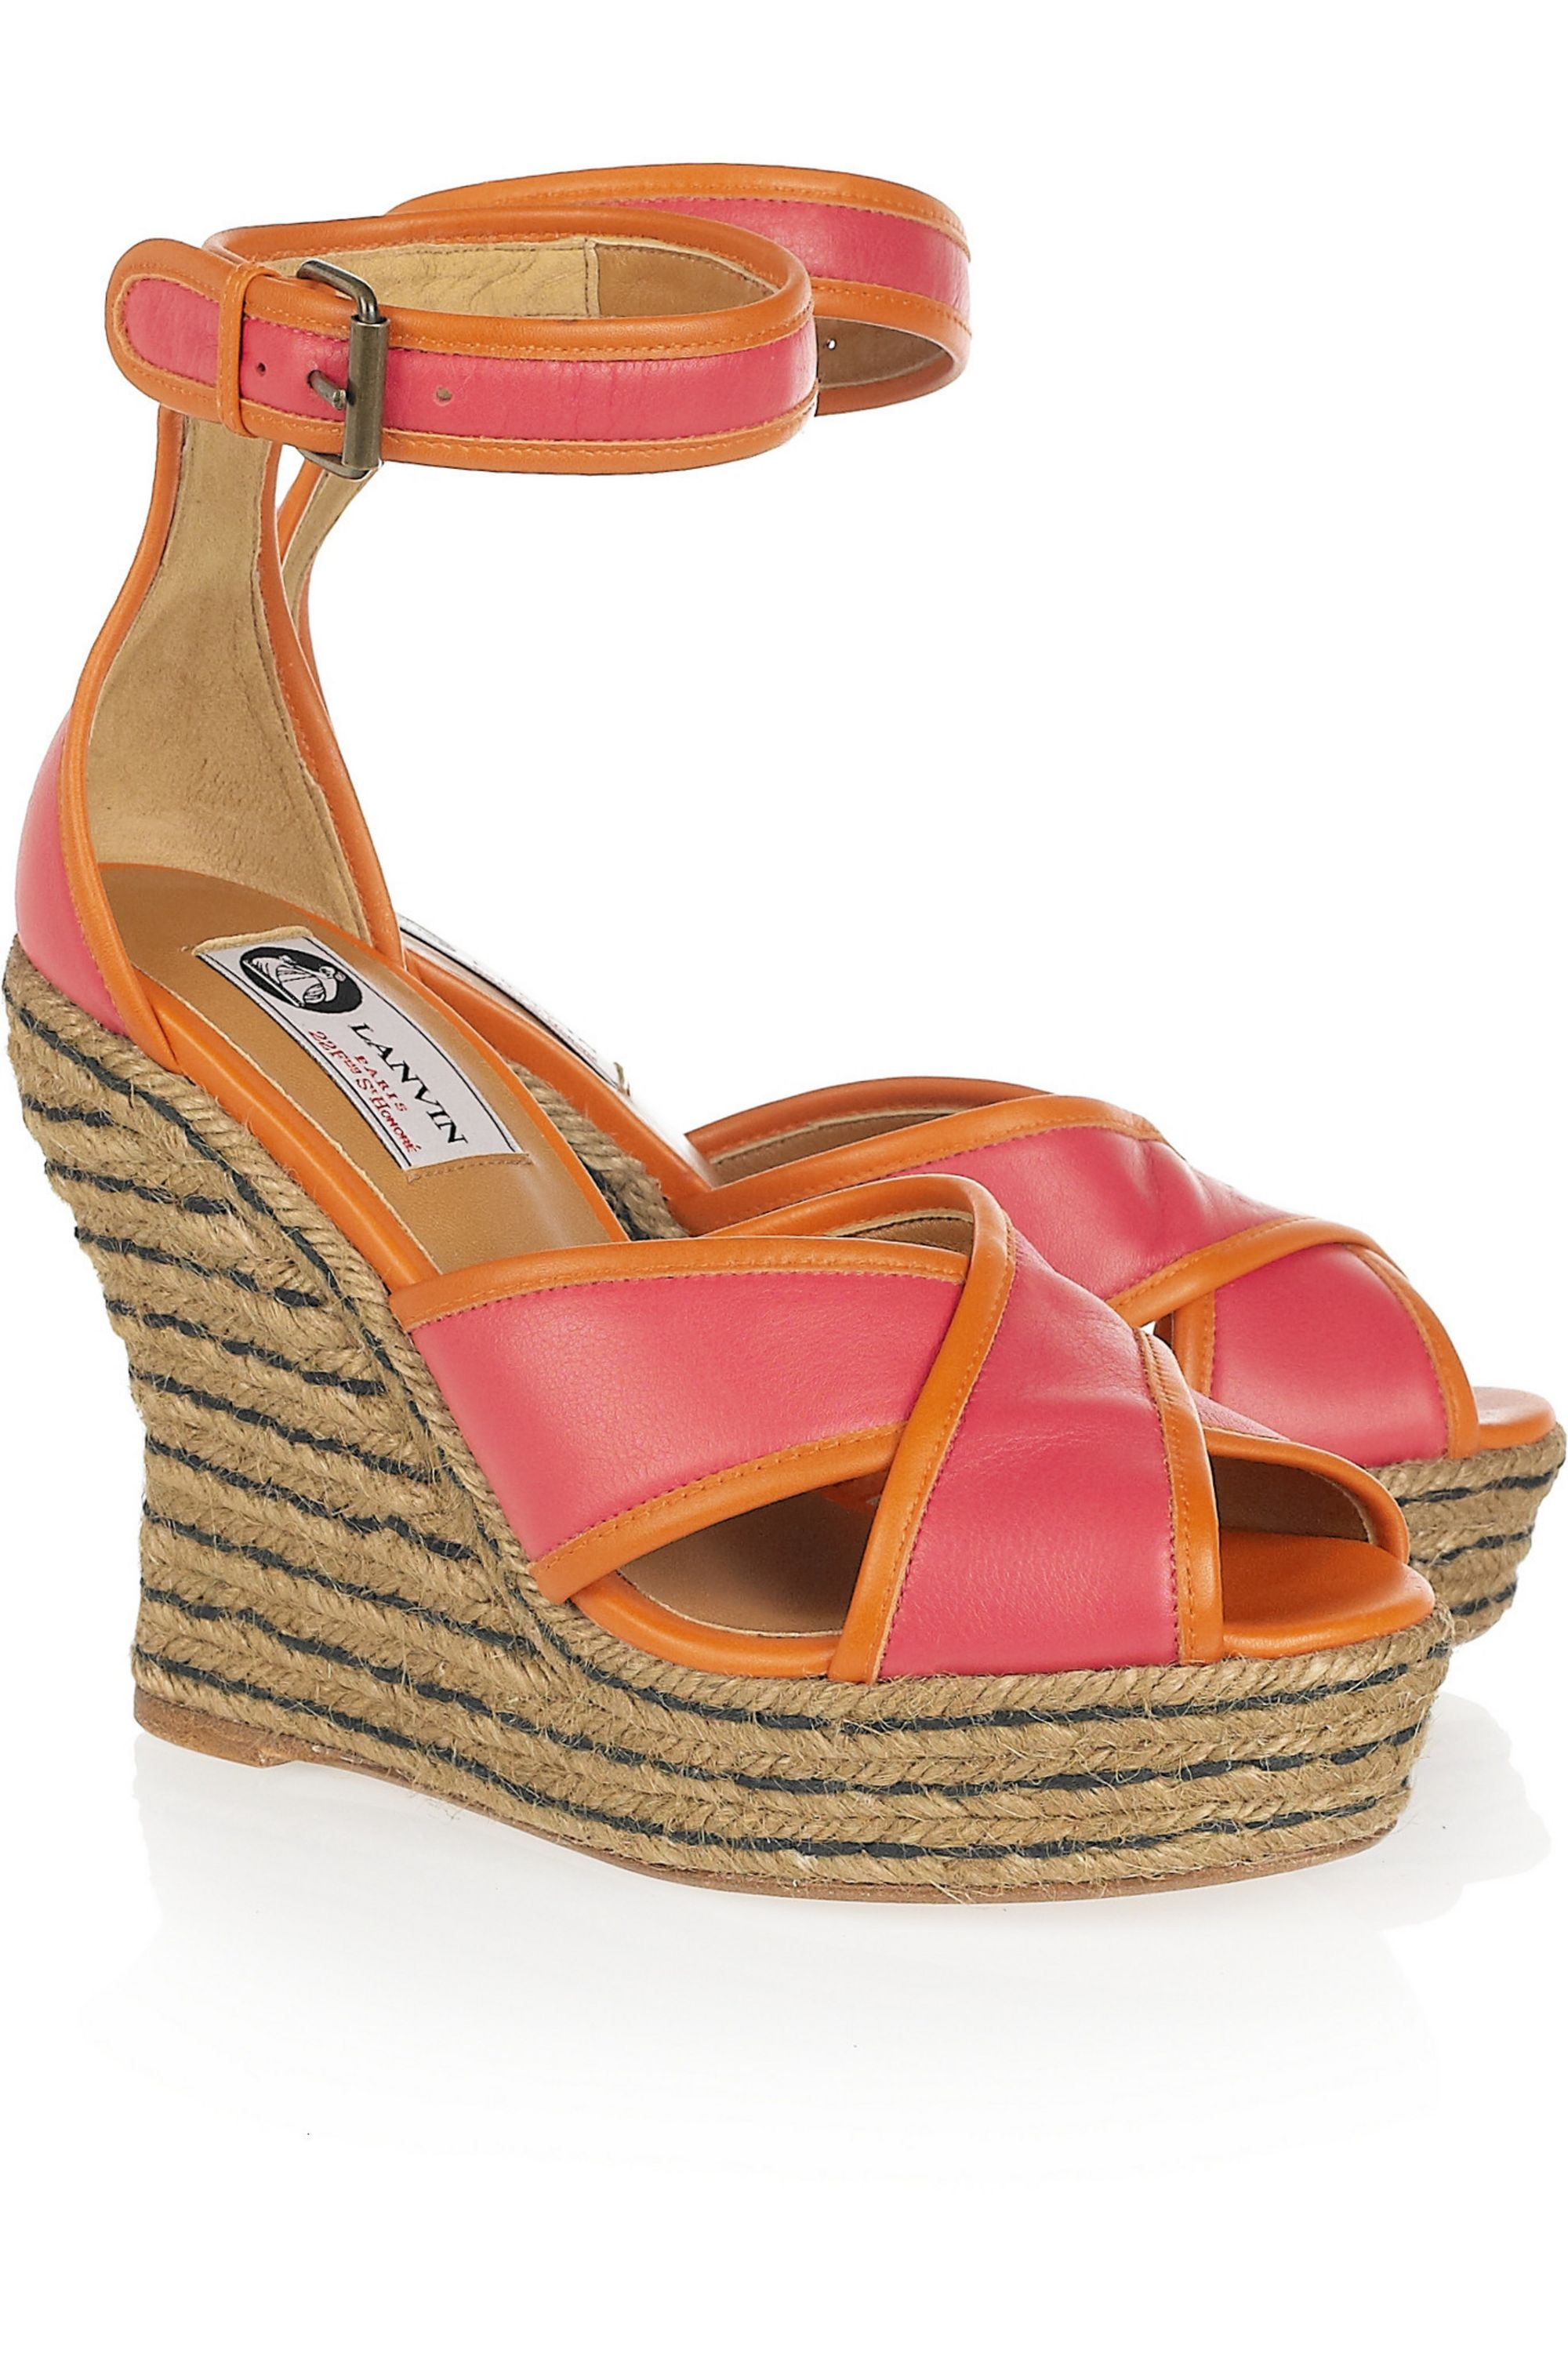 Lanvin Two-tone leather espadrille wedge sandals